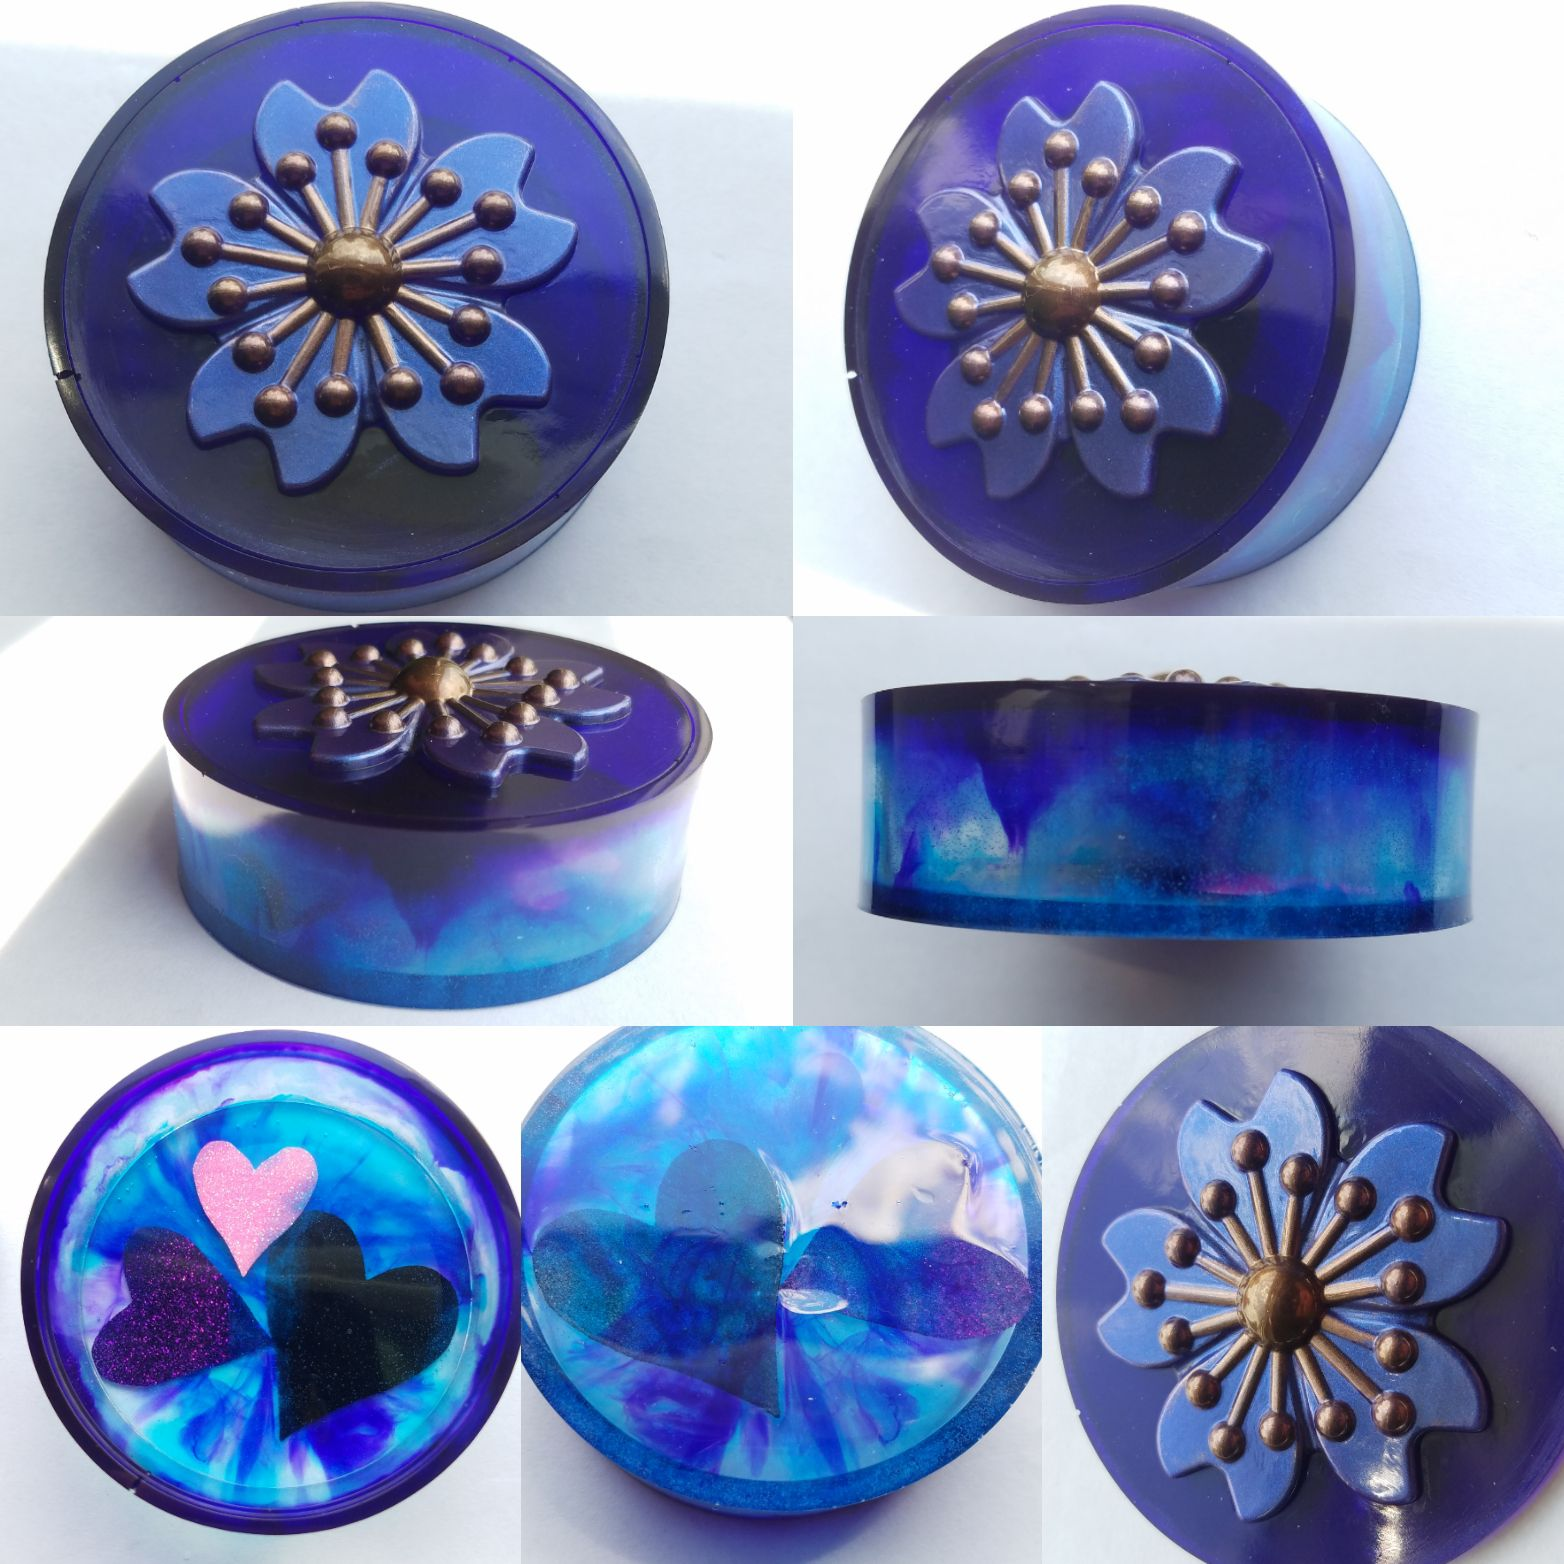 Purple and Blue resin container with flo